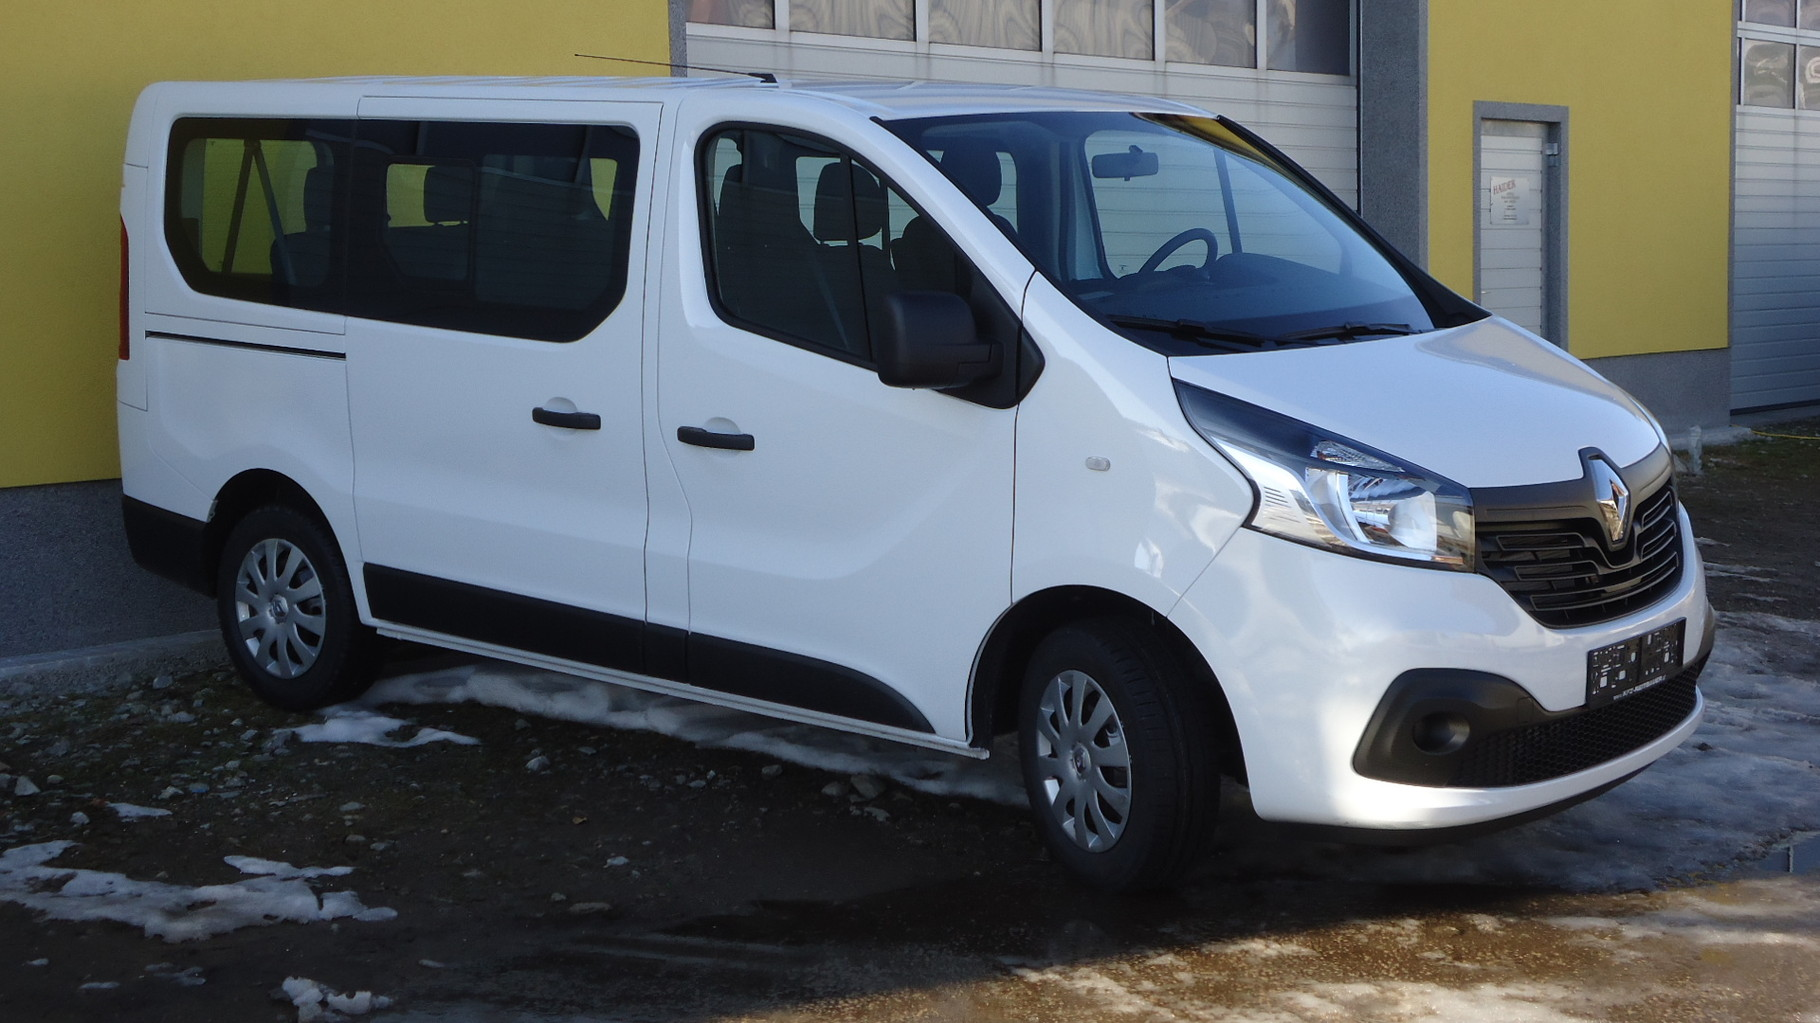 mietwagen haider ger te und maschinenverleih gmbh. Black Bedroom Furniture Sets. Home Design Ideas